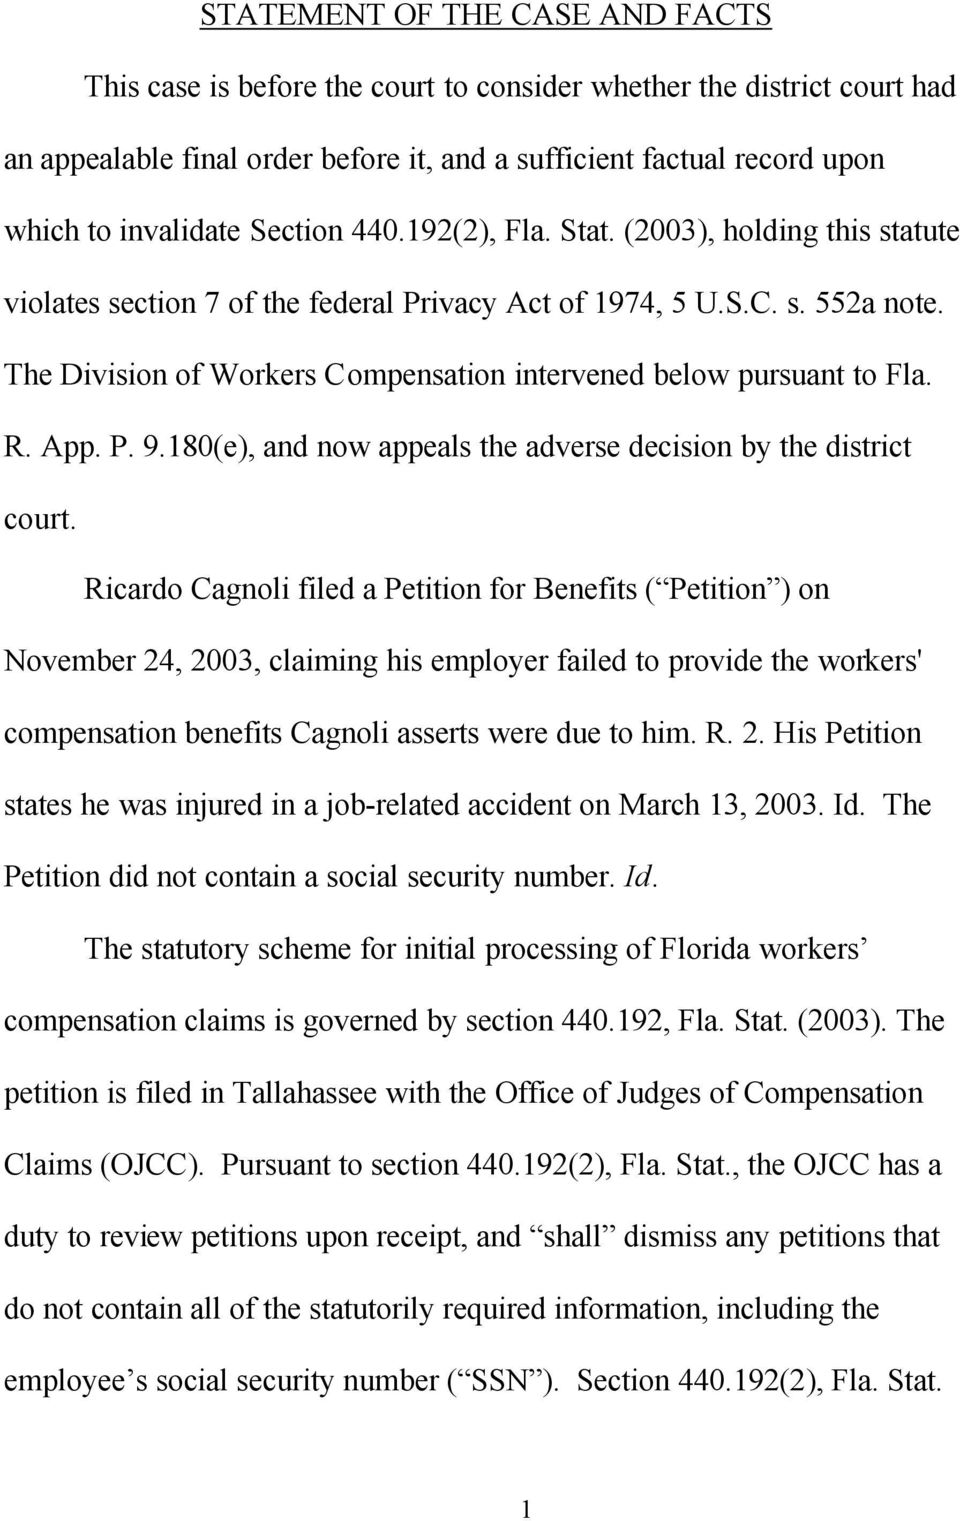 The Division of Workers Compensation intervened below pursuant to Fla. R. App. P. 9.180(e), and now appeals the adverse decision by the district court.